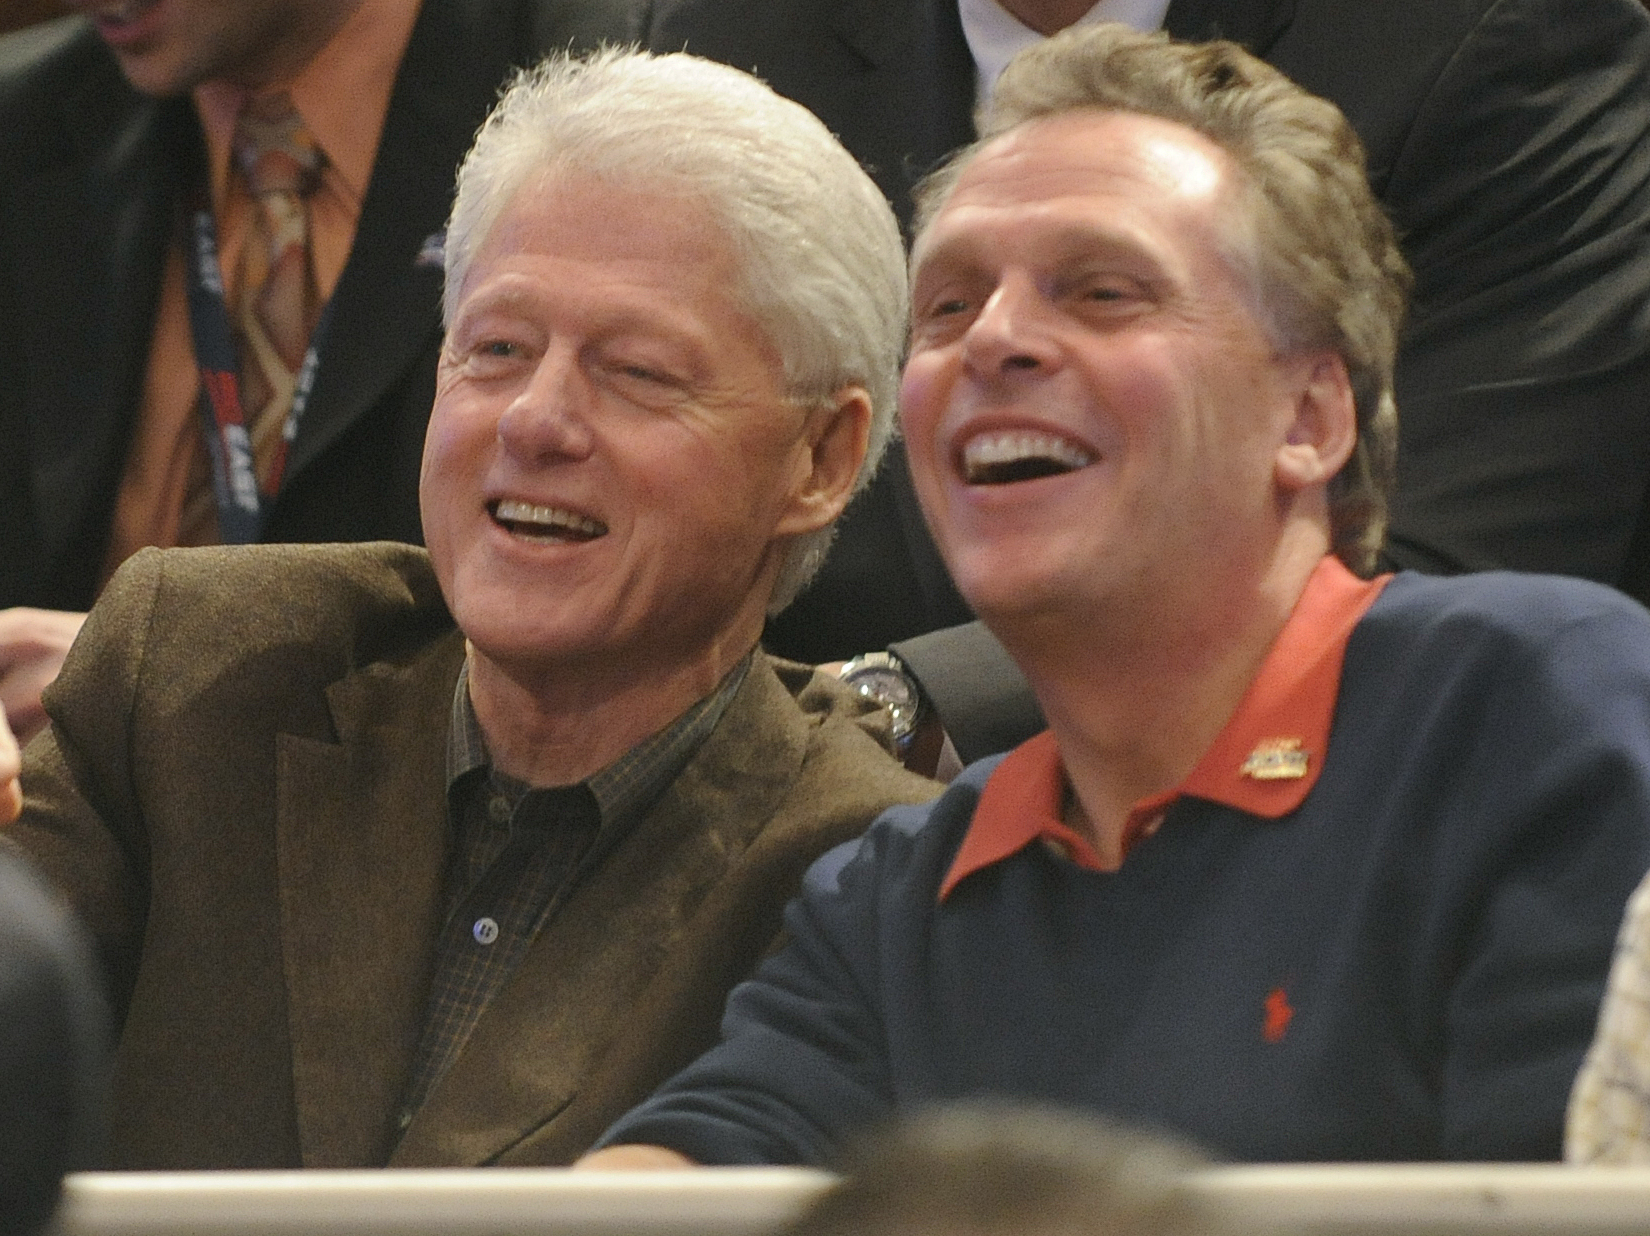 Former Democratic National Committee chairman Terry McAulliffe watches the Big East basketball tournament with former President Bill Clinton on March 11, 2010, in New York.